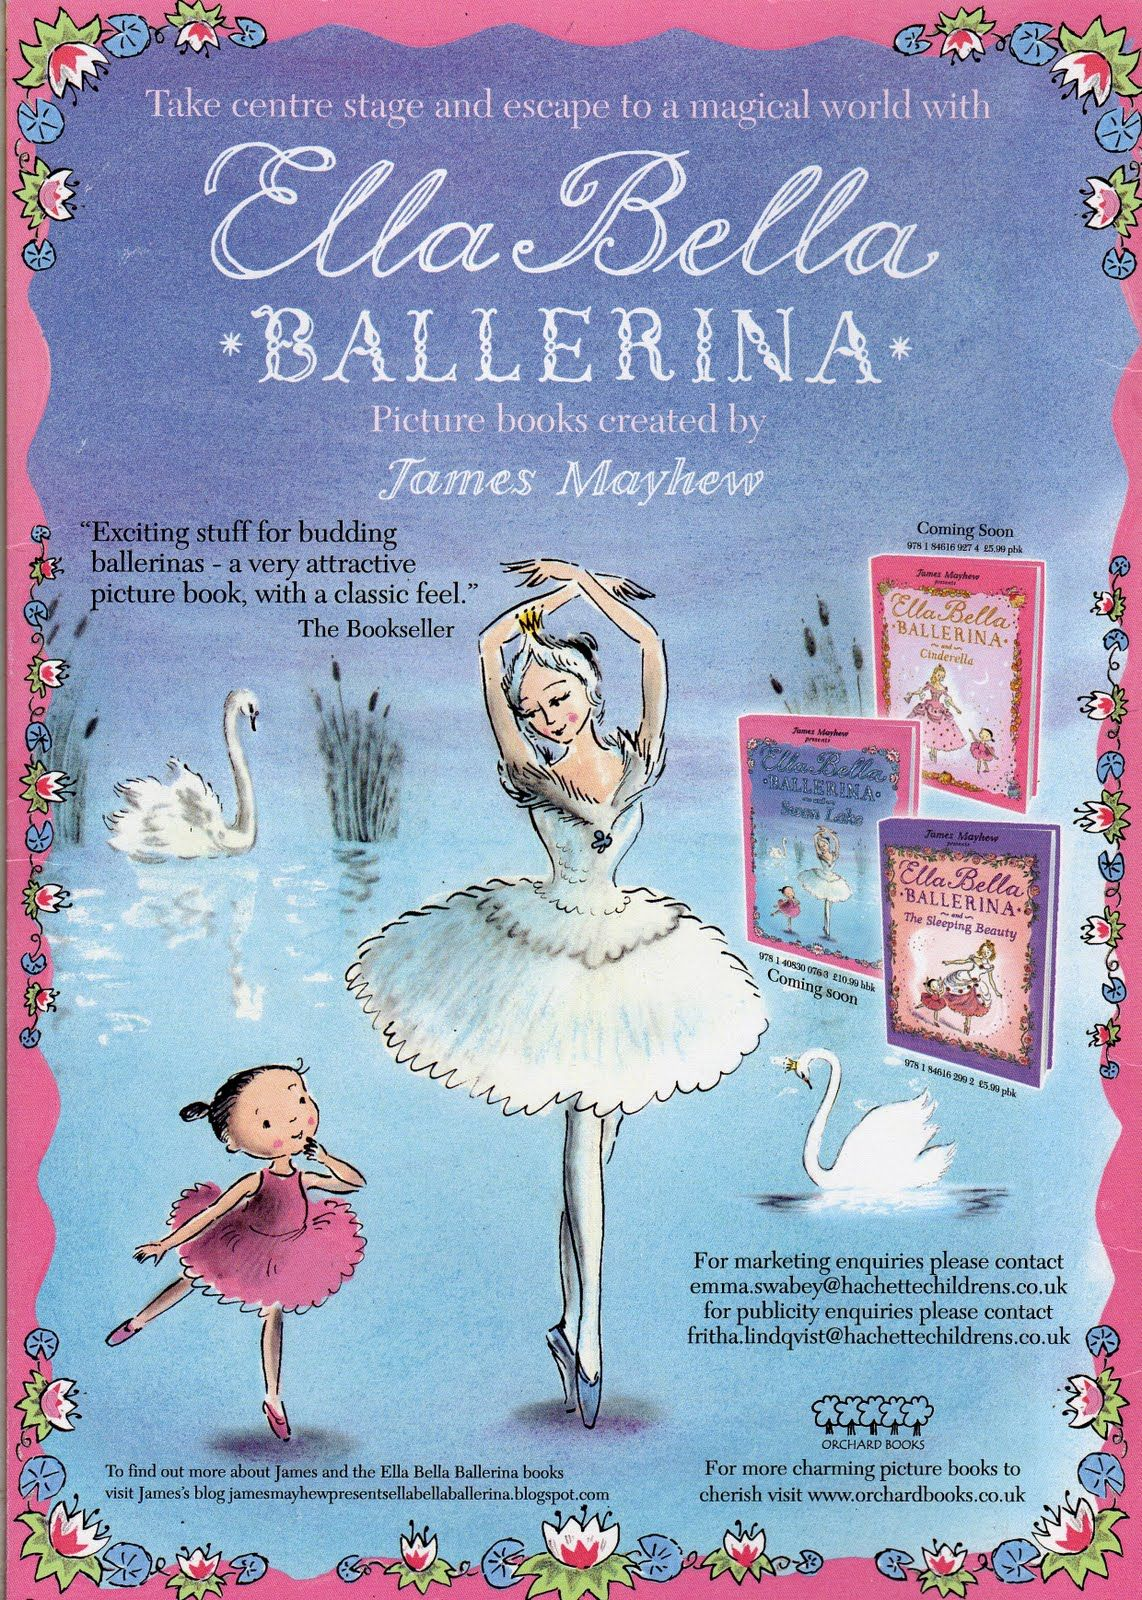 Our Daughter Ella Loves The Bella Ballerina Books Shell Be Thrilled When